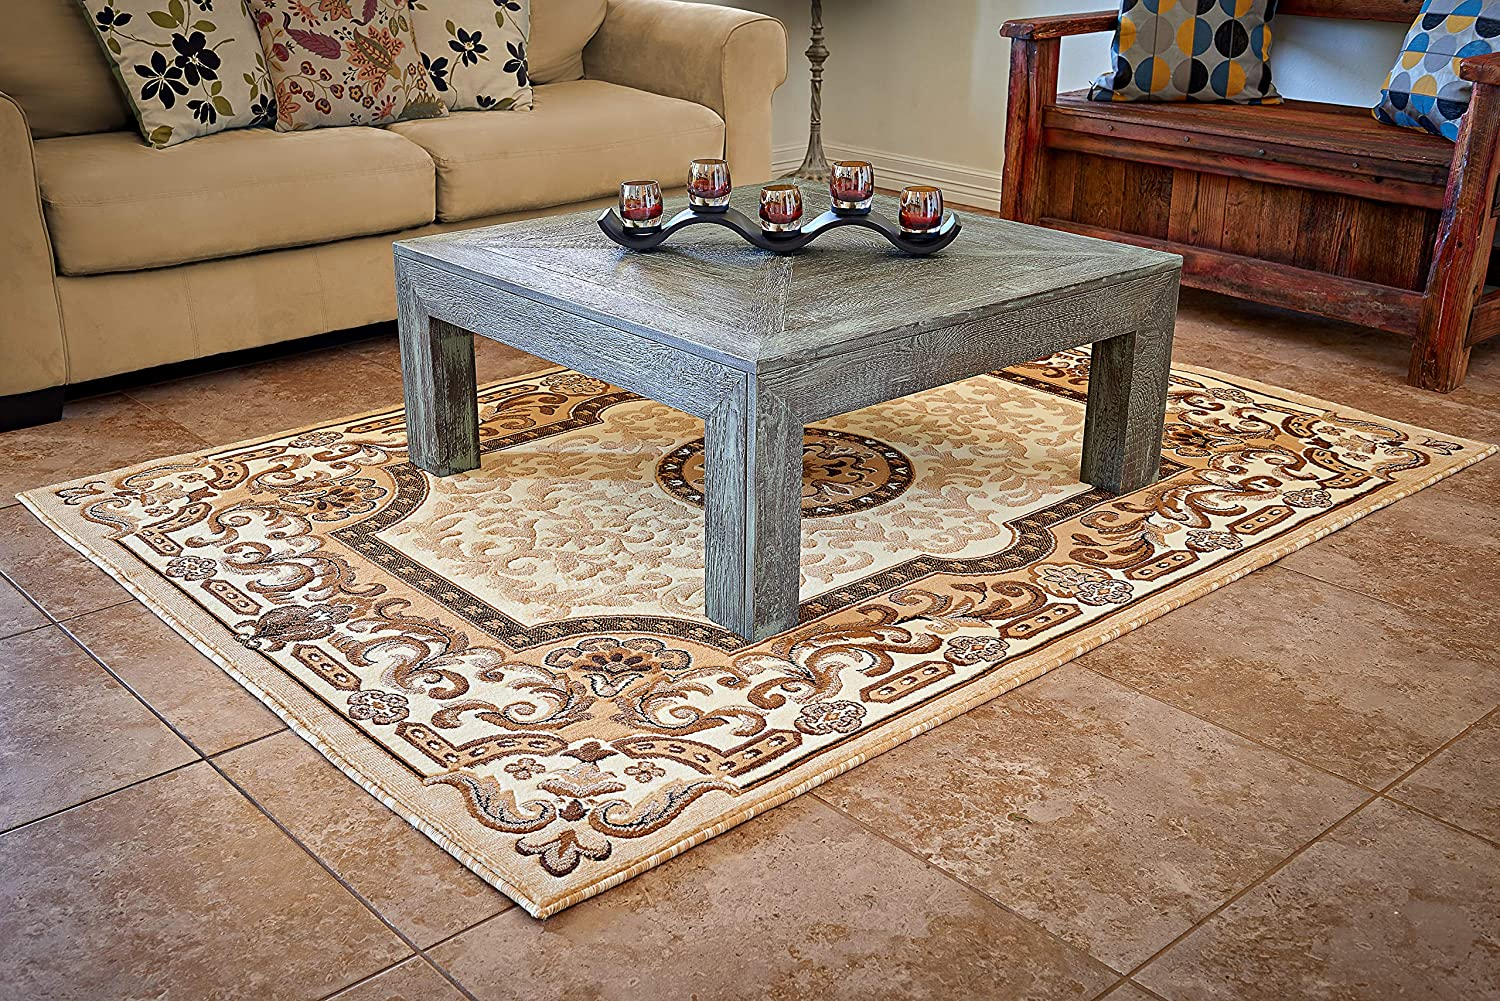 Cosy House Collection Area Rugs for Indoors - Large Rug for Living Room - Traditional Oriental Style Home Decor | Resists Stains, Soil, Fading & Freying - Natural Jute | 5'2